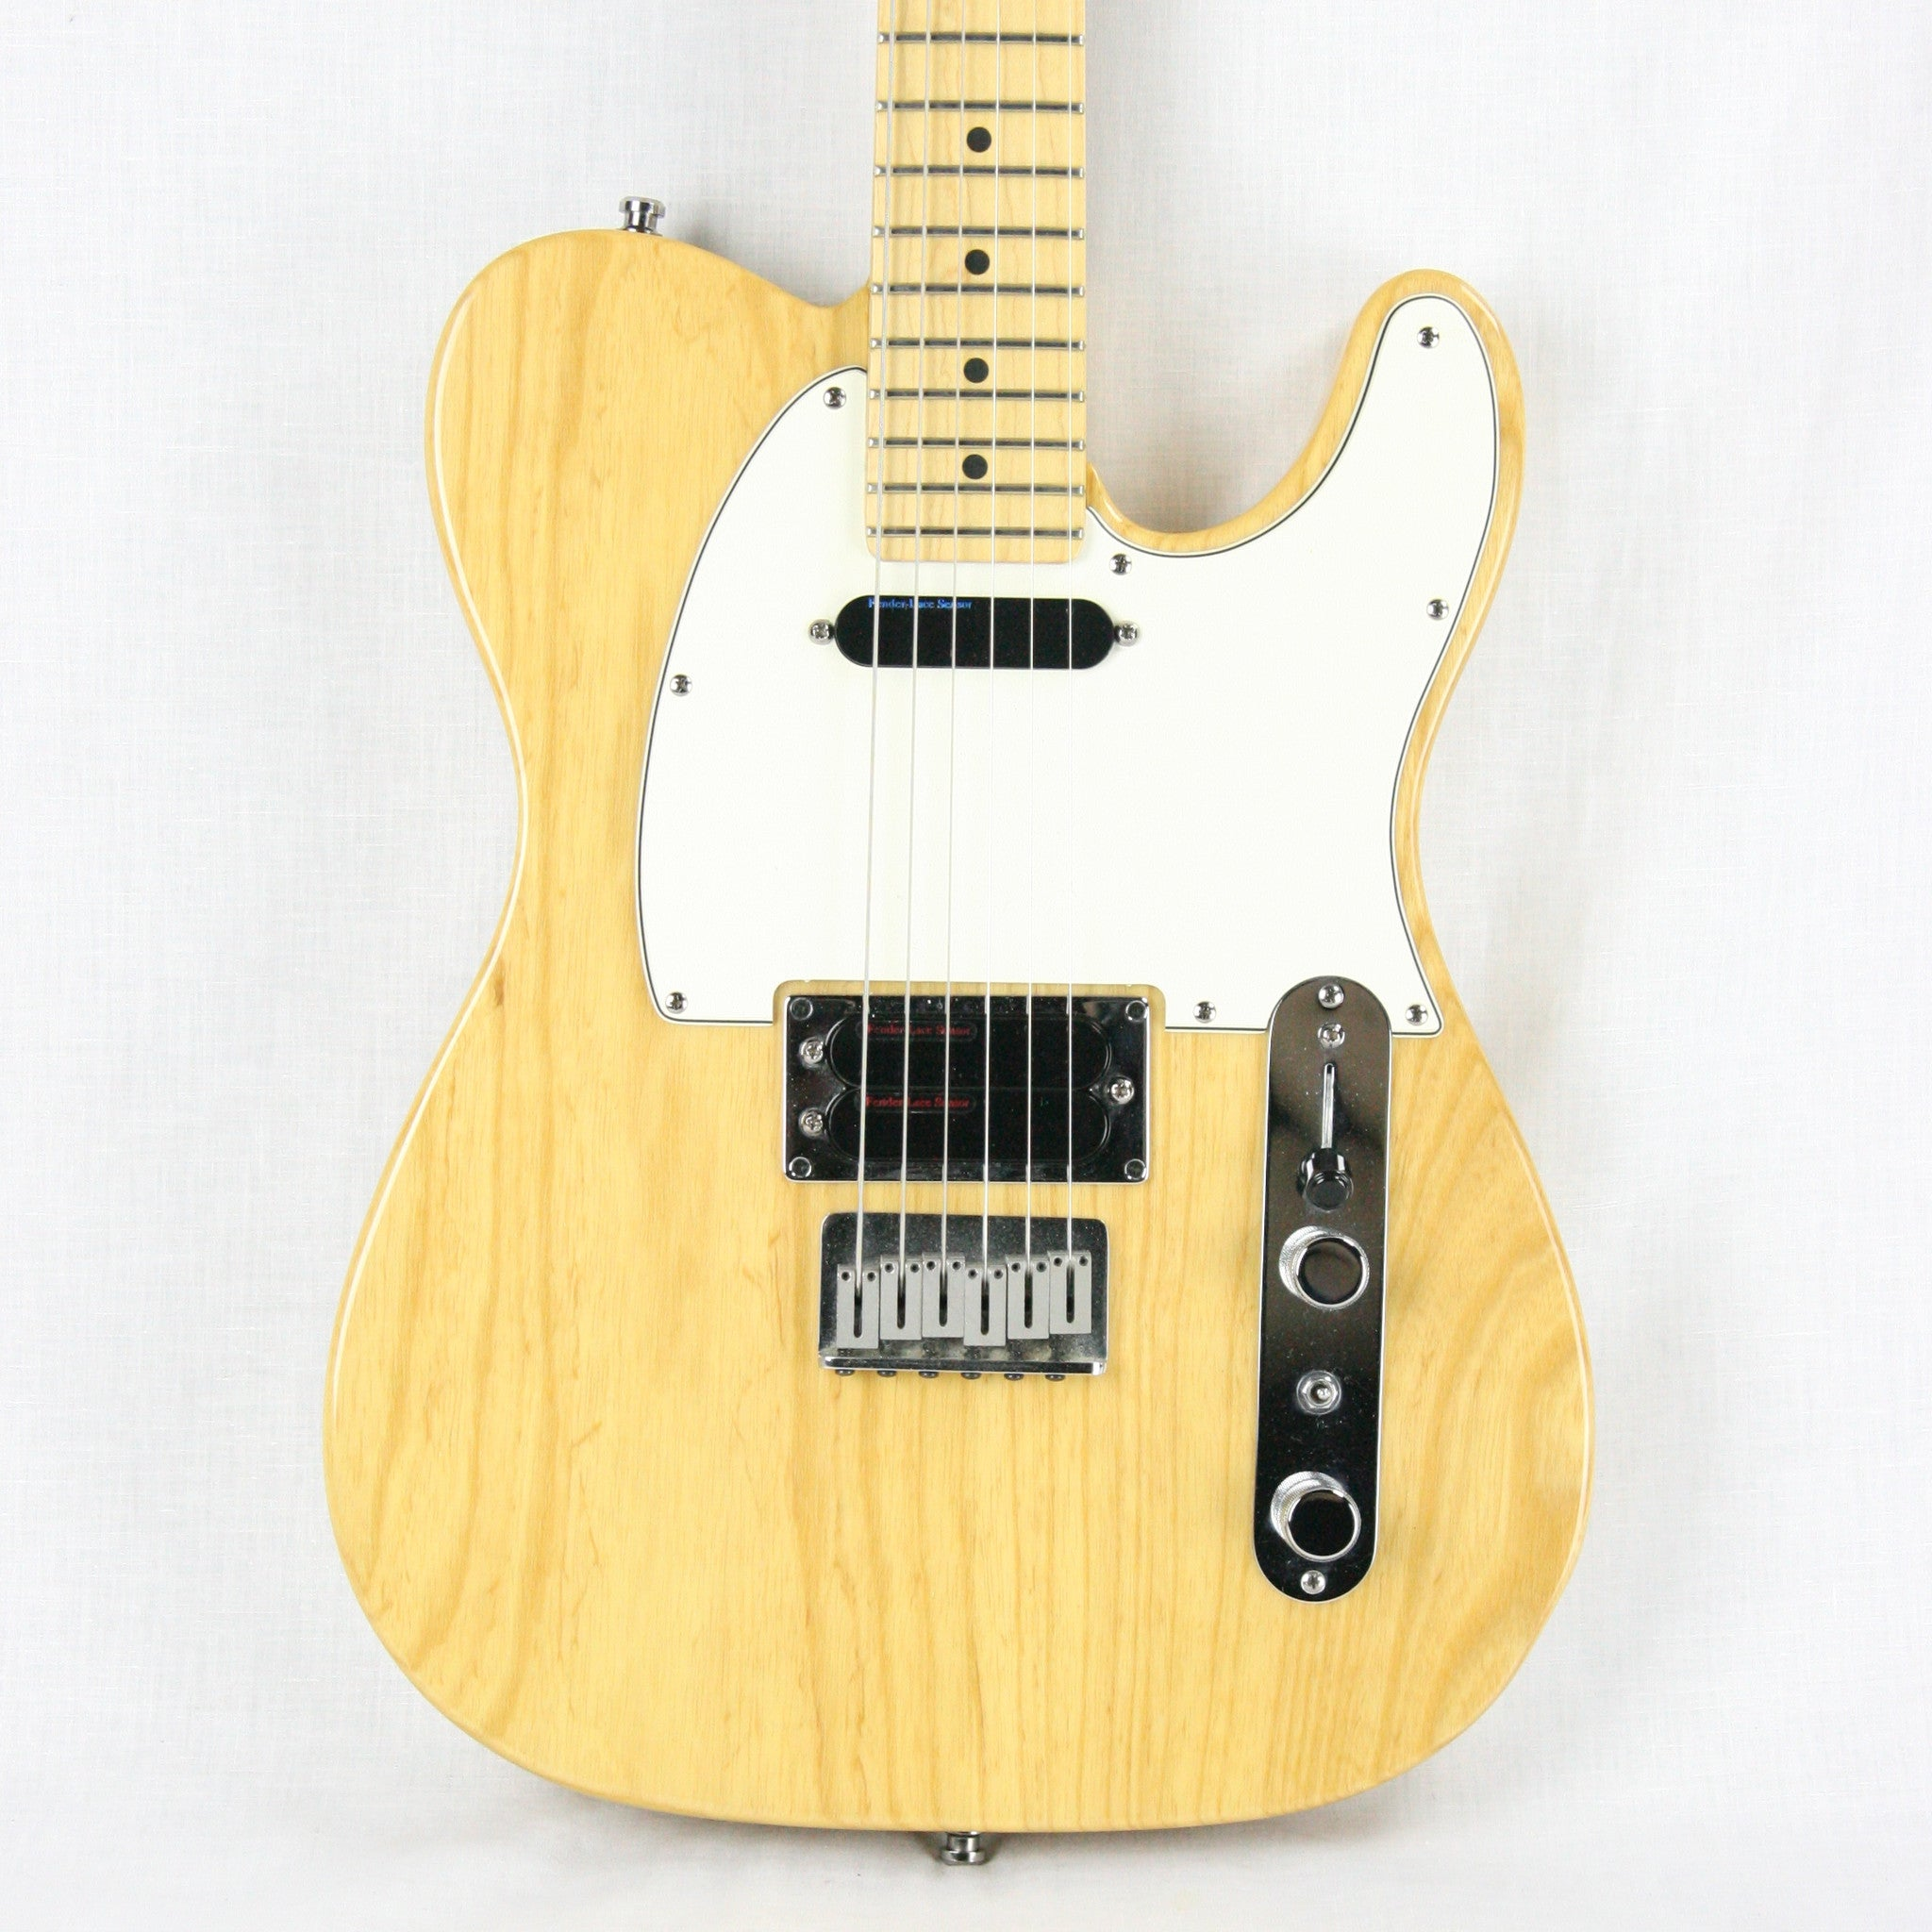 MINTY 1992 Fender USA Telecaster Plus Natural w/ OHSC! Version 1 V1 Lace Sensor American Tele! Jonny Greenwood Radiohead